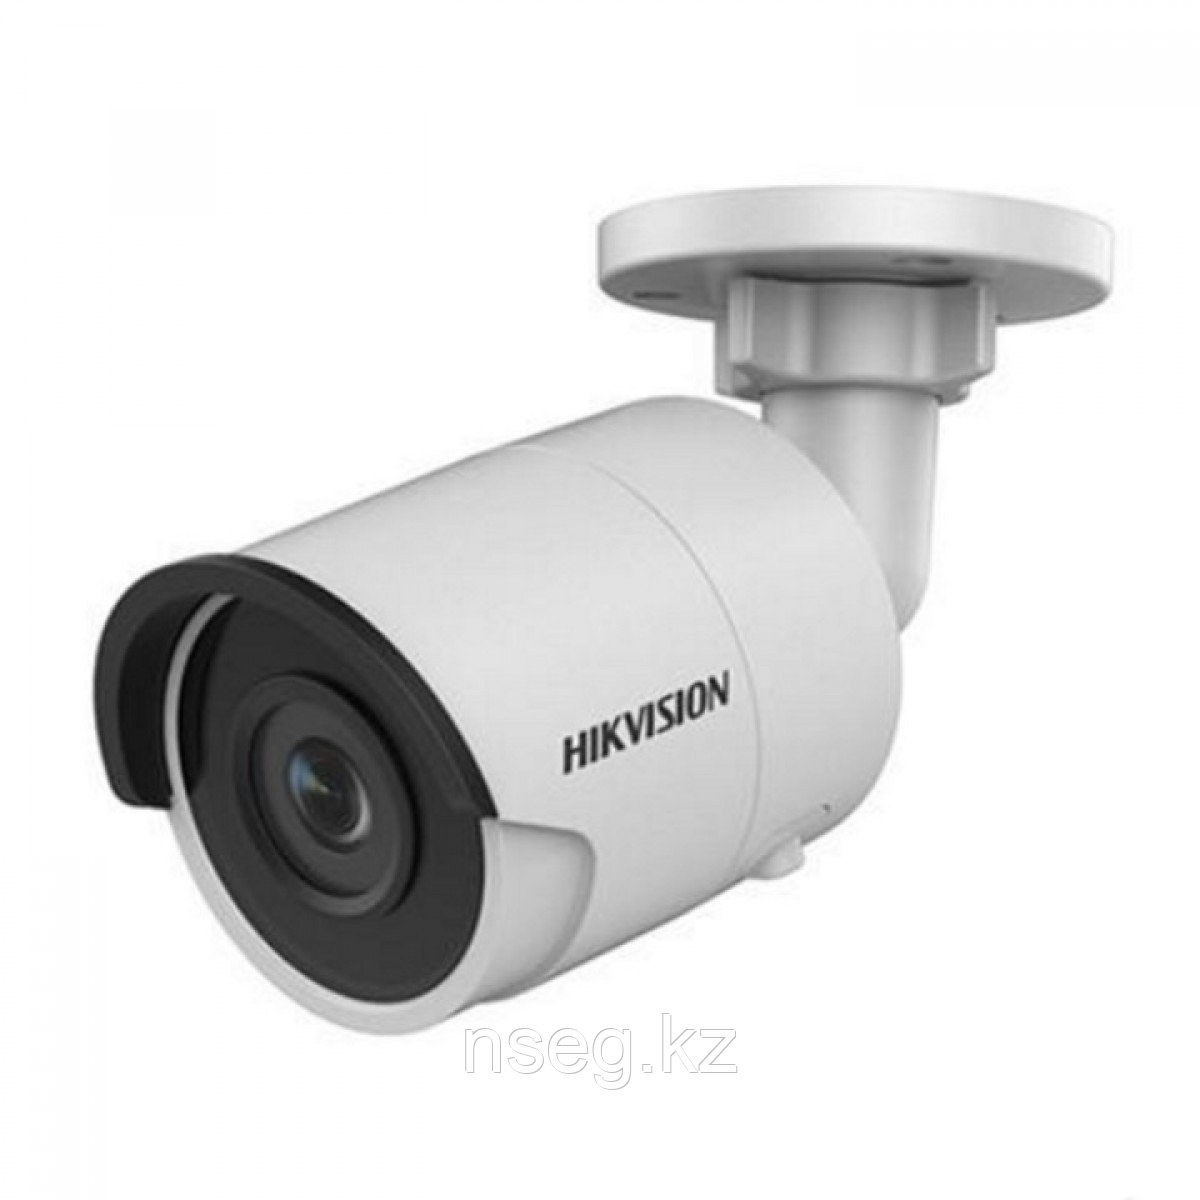 HIKVISION DS-2CD2055FWD-I IP камера